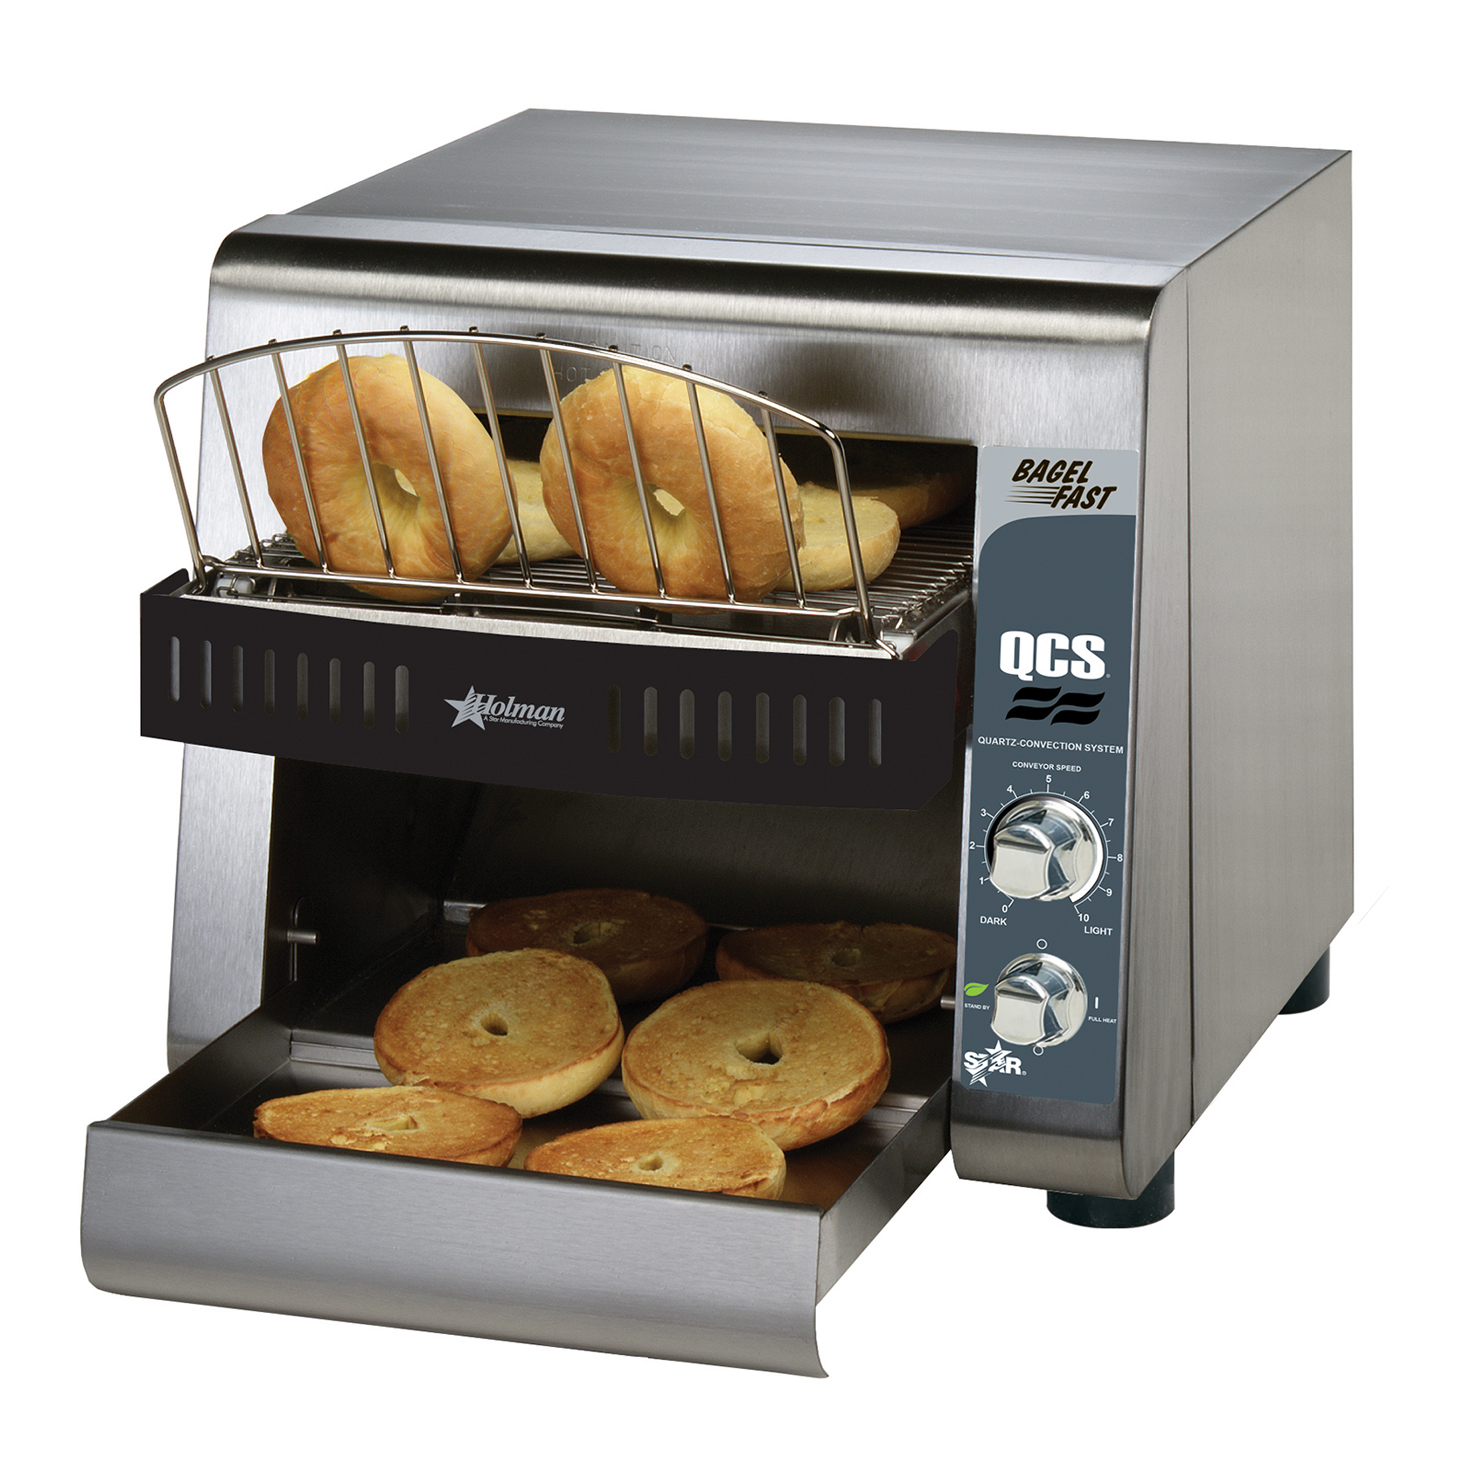 Star QCS1-500B toaster, conveyor type